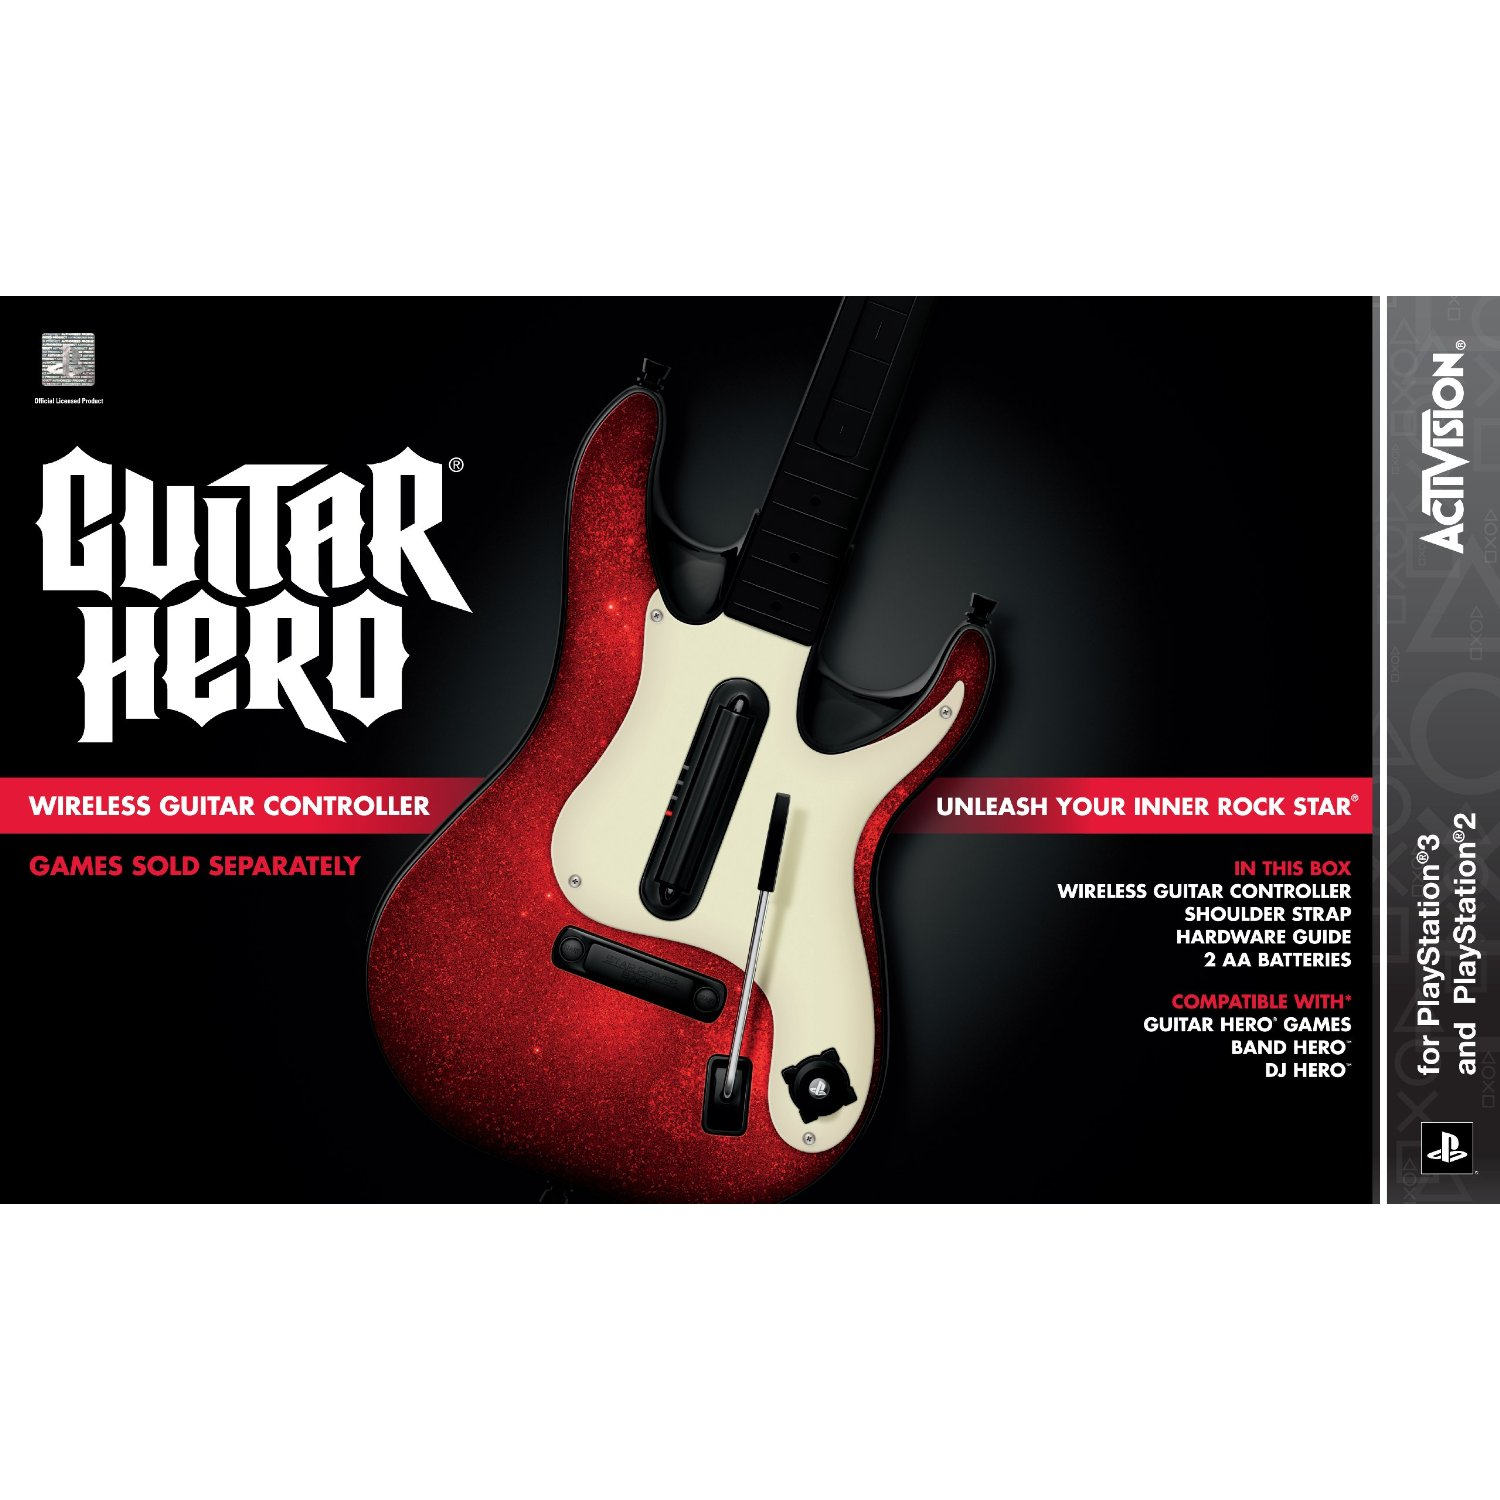 the gamebazar ps3 guitar hero 5 stand alone guitar. Black Bedroom Furniture Sets. Home Design Ideas